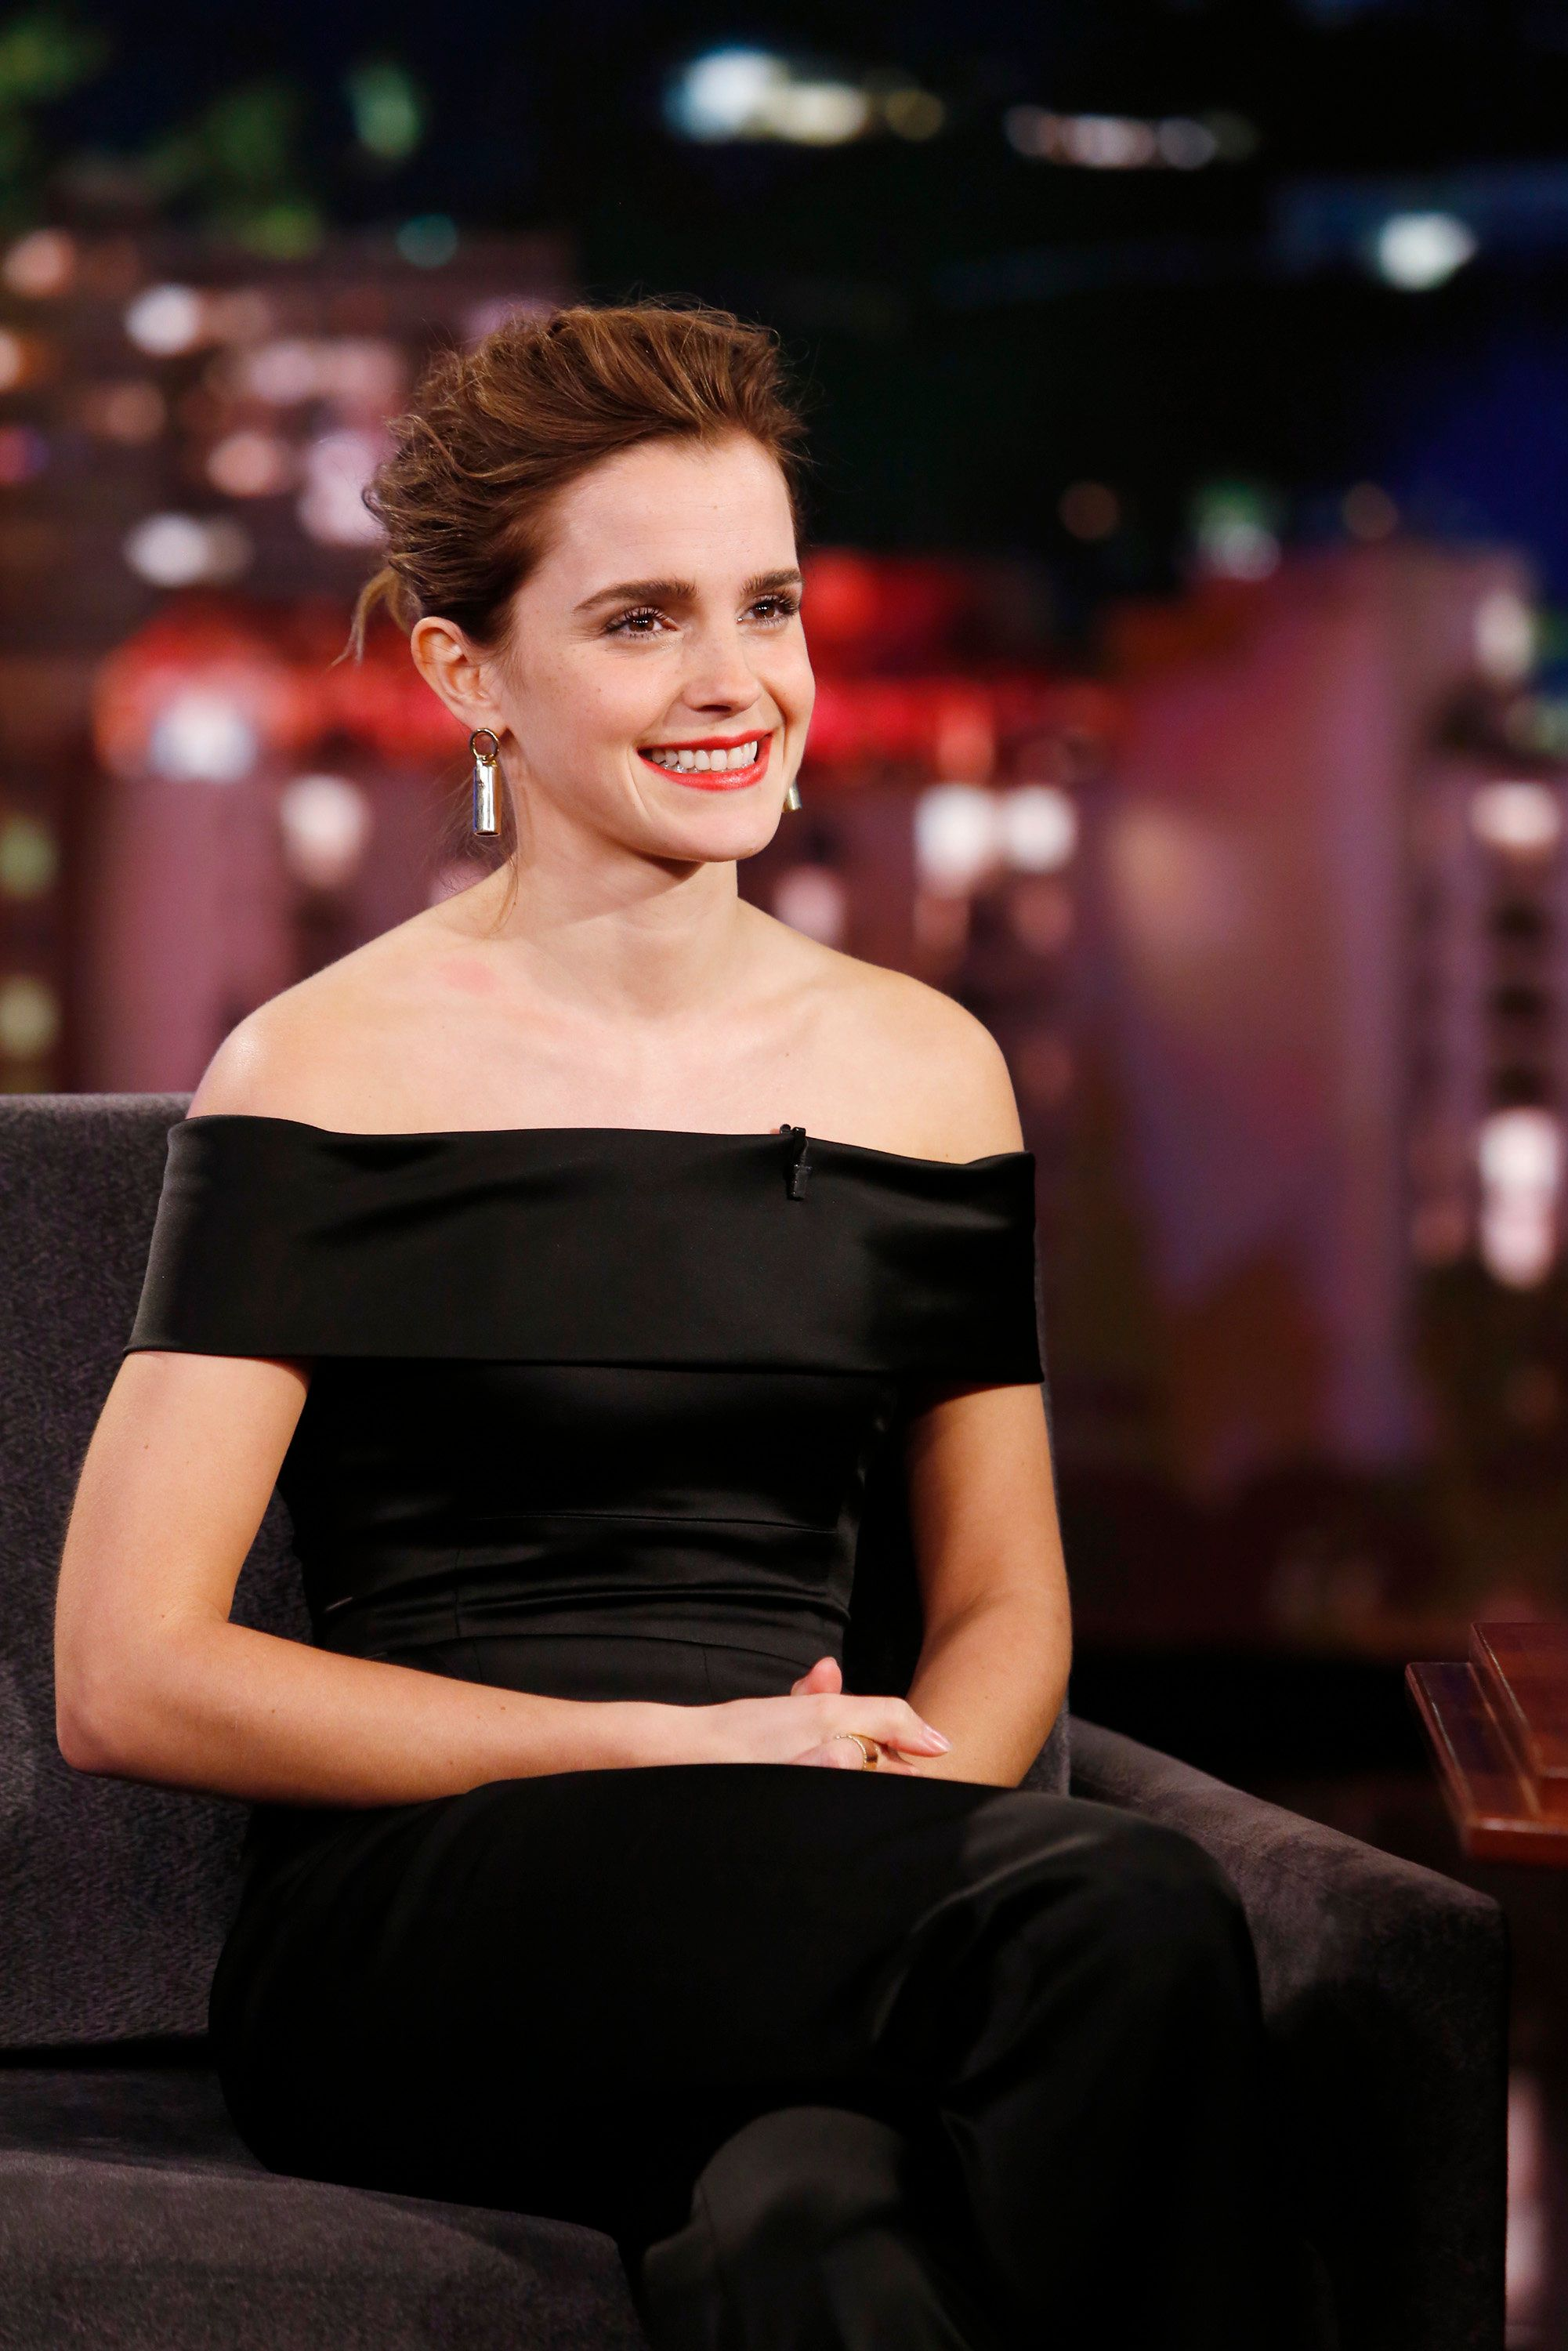 Emma Watson Reveals The 'Harry Potter' Cast Have Their Own WhatsApp Group (Despite Her 'Ruining' Takes...